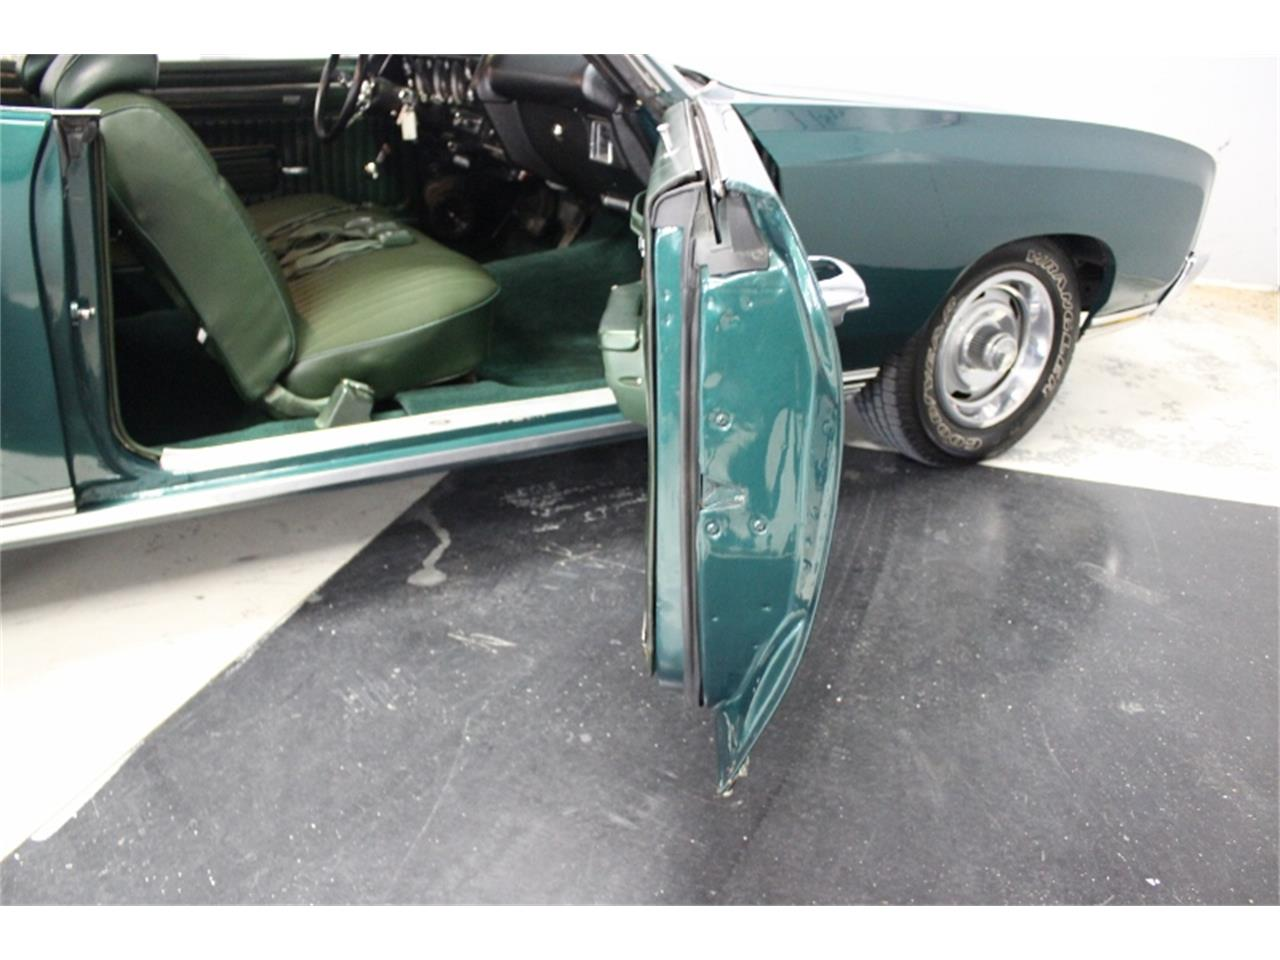 Large Picture of 1970 Chevrolet Monte Carlo located in Lillington North Carolina - $15,000.00 Offered by East Coast Classic Cars - PPCA